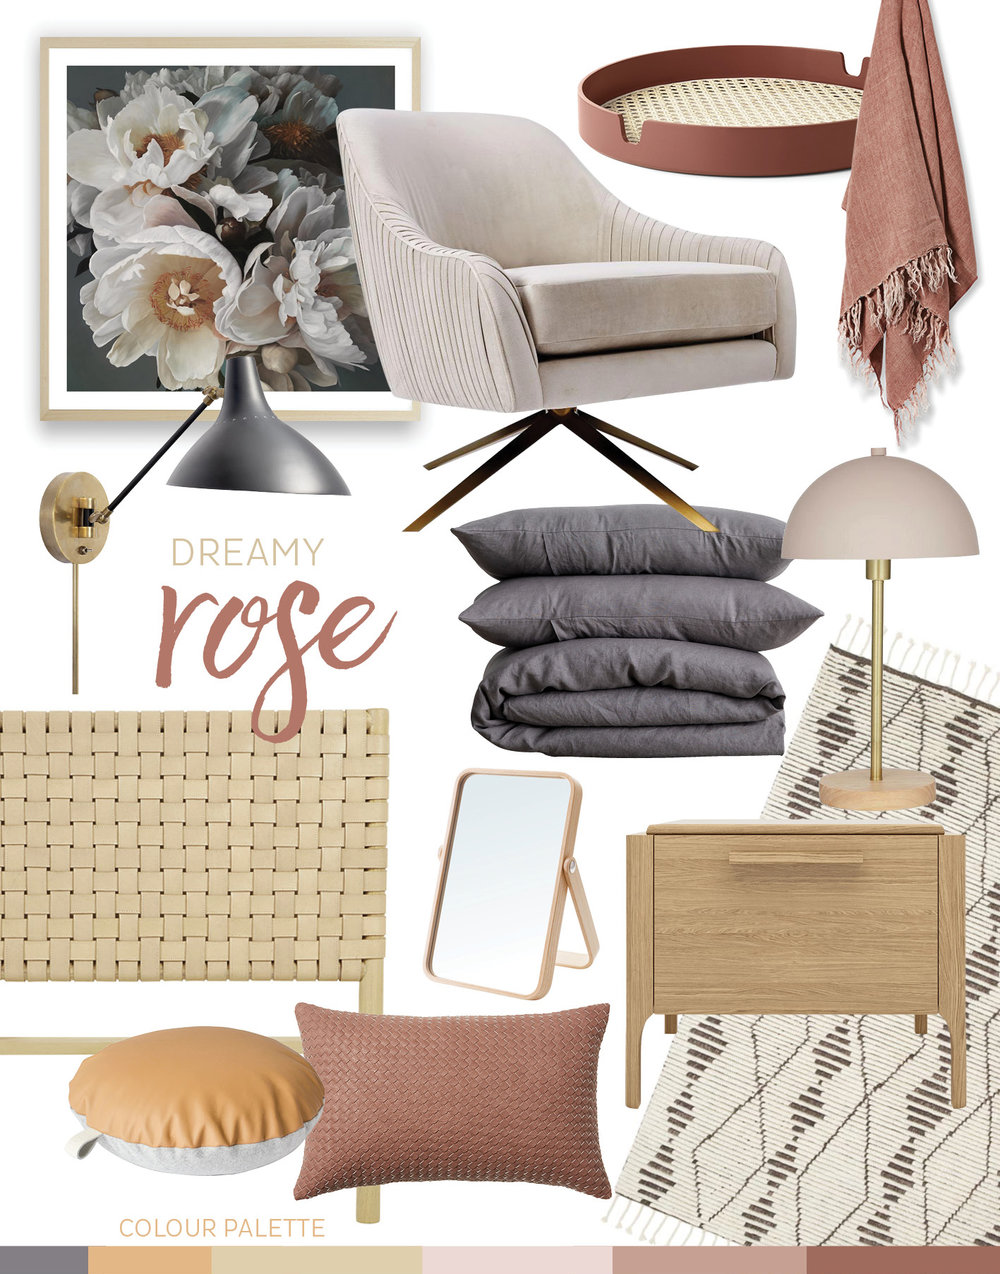 adore_home_blog_dreamy_rose_terracotta_pink_nude_leather_bedroom_moodboard_scandi_contemporary.jpg